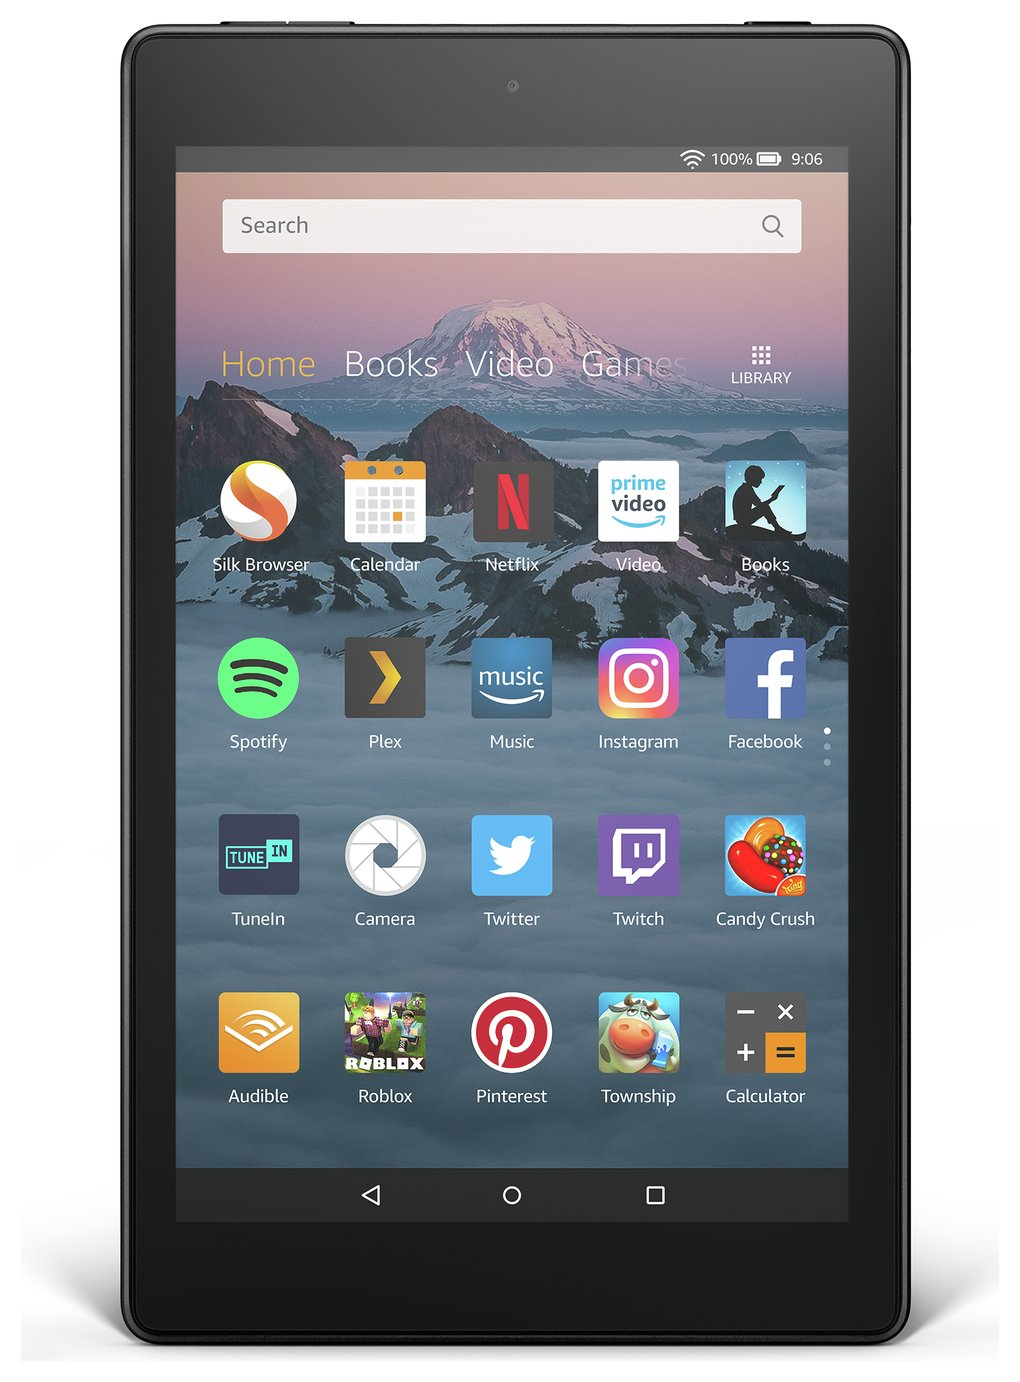 Amazon Fire HD 8 Alexa 8 Inch 32GB Tablet - Black